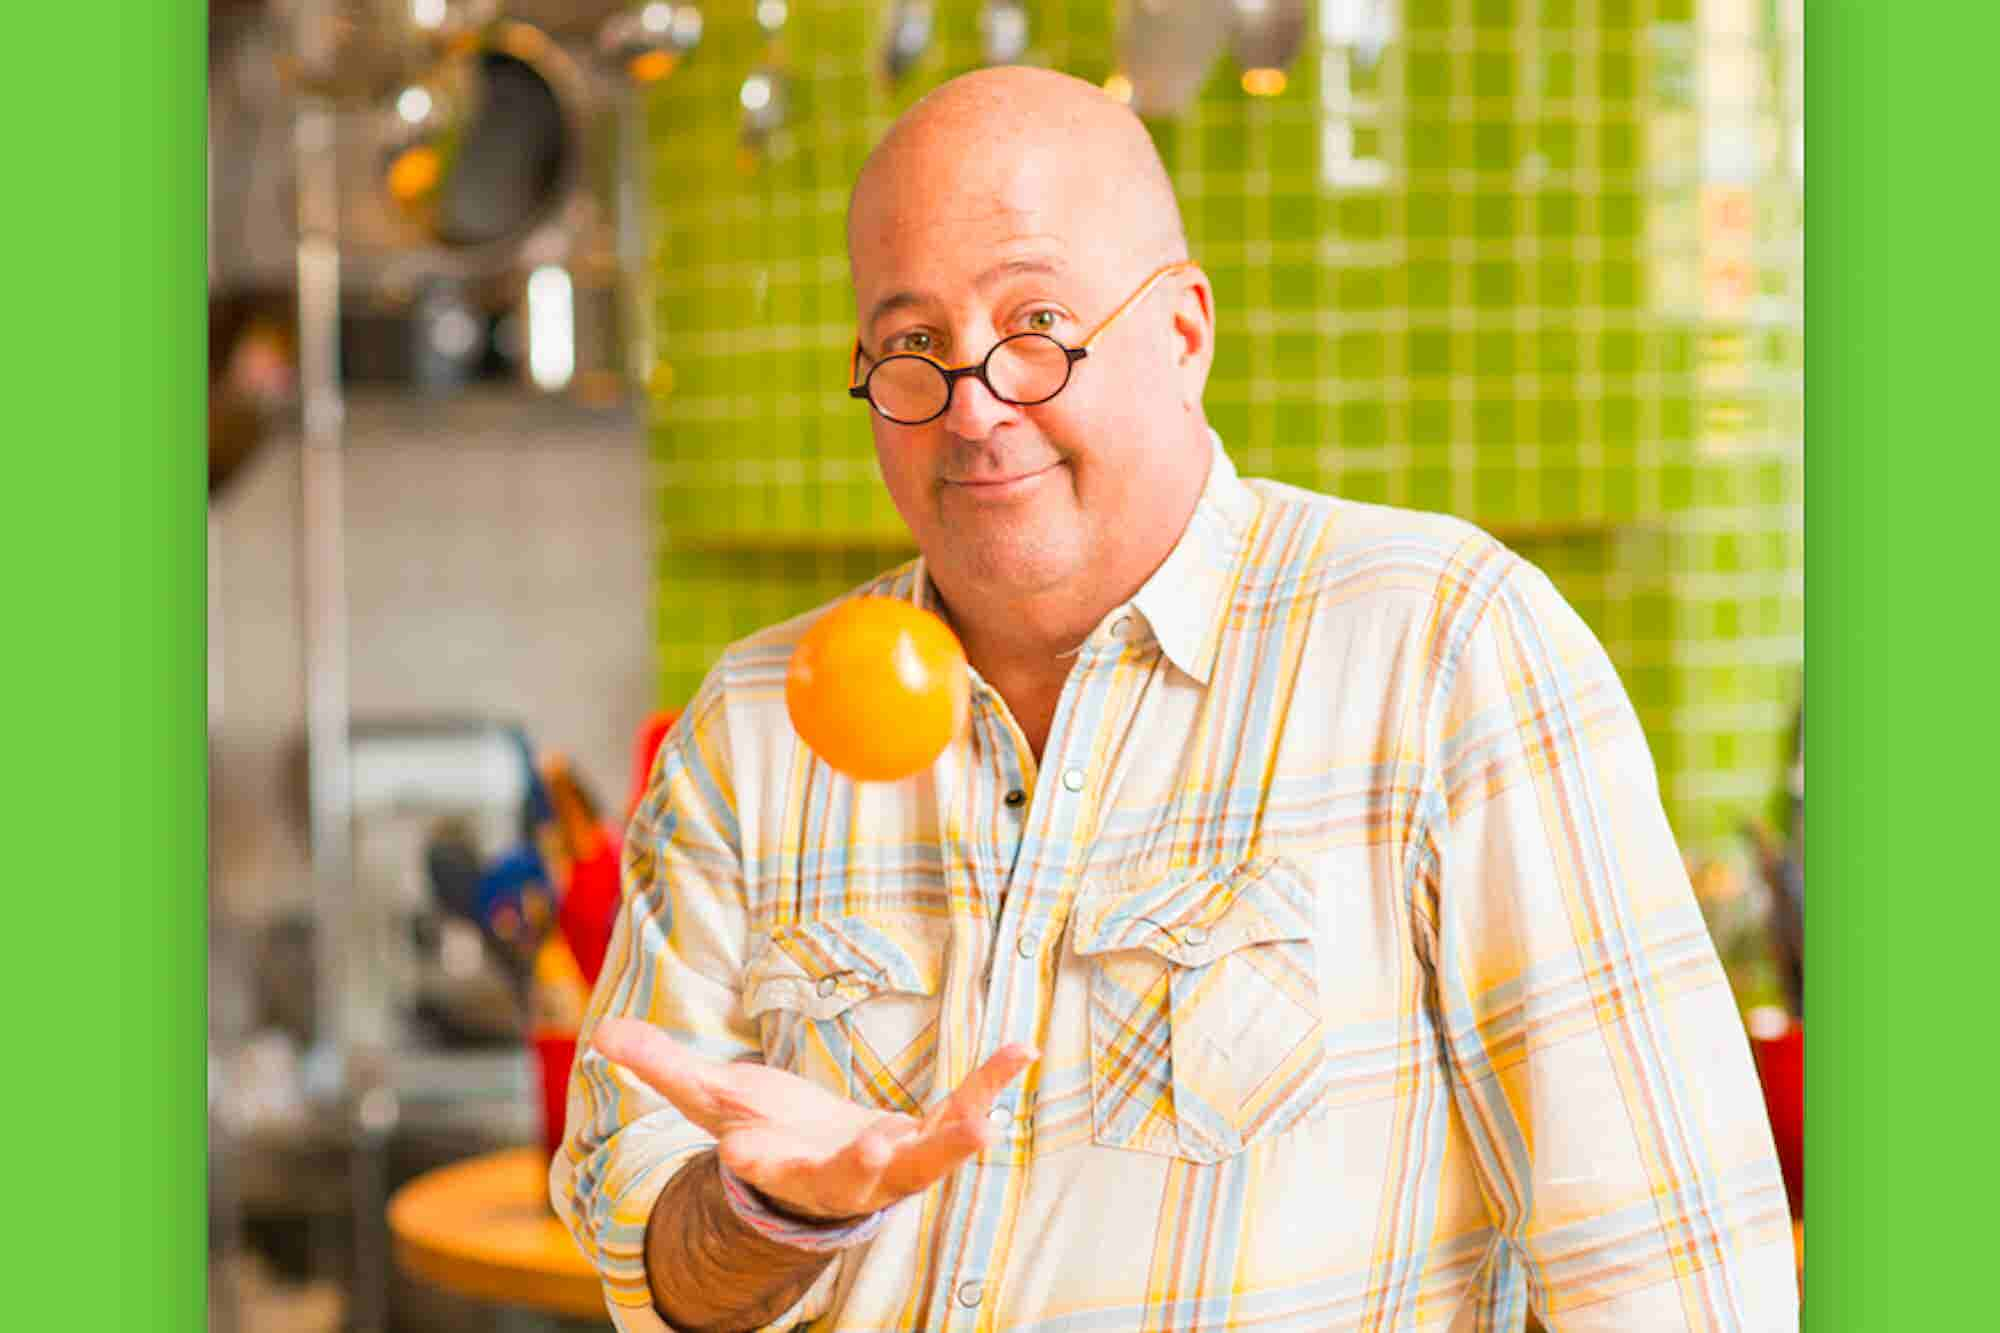 (Podcast) 'Bizarre Foods' Andrew Zimmern: 'I'm Addicted to the Hustle'